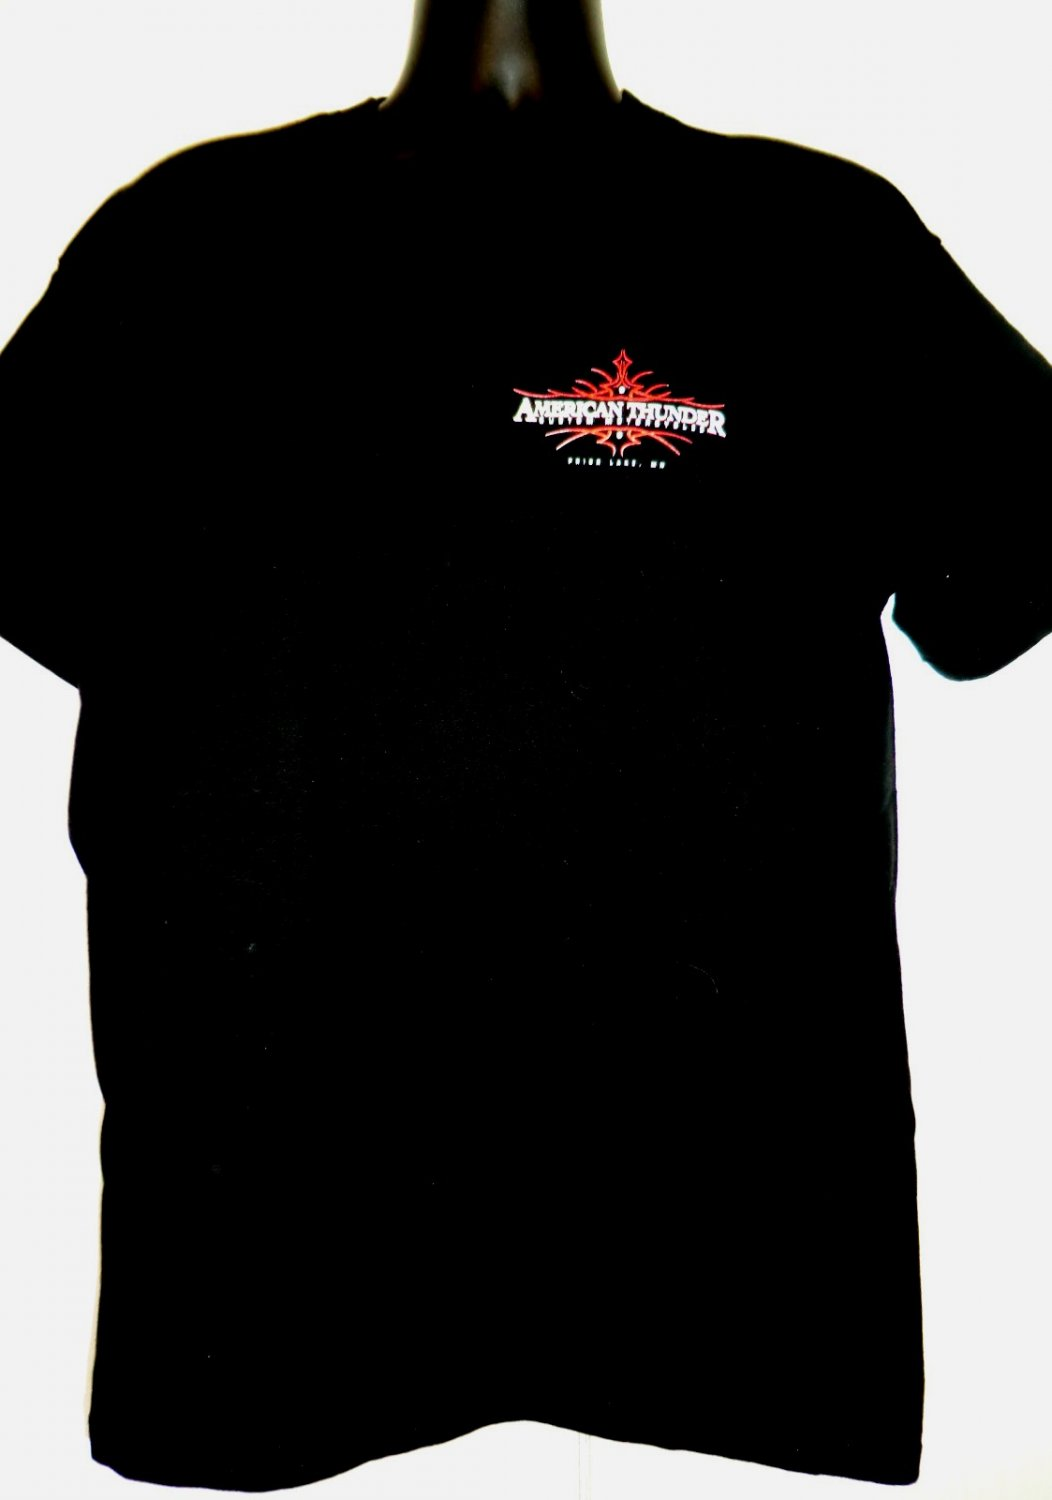 American thunder t shirt size xl prior lake minnesota for T shirts and more prior lake mn